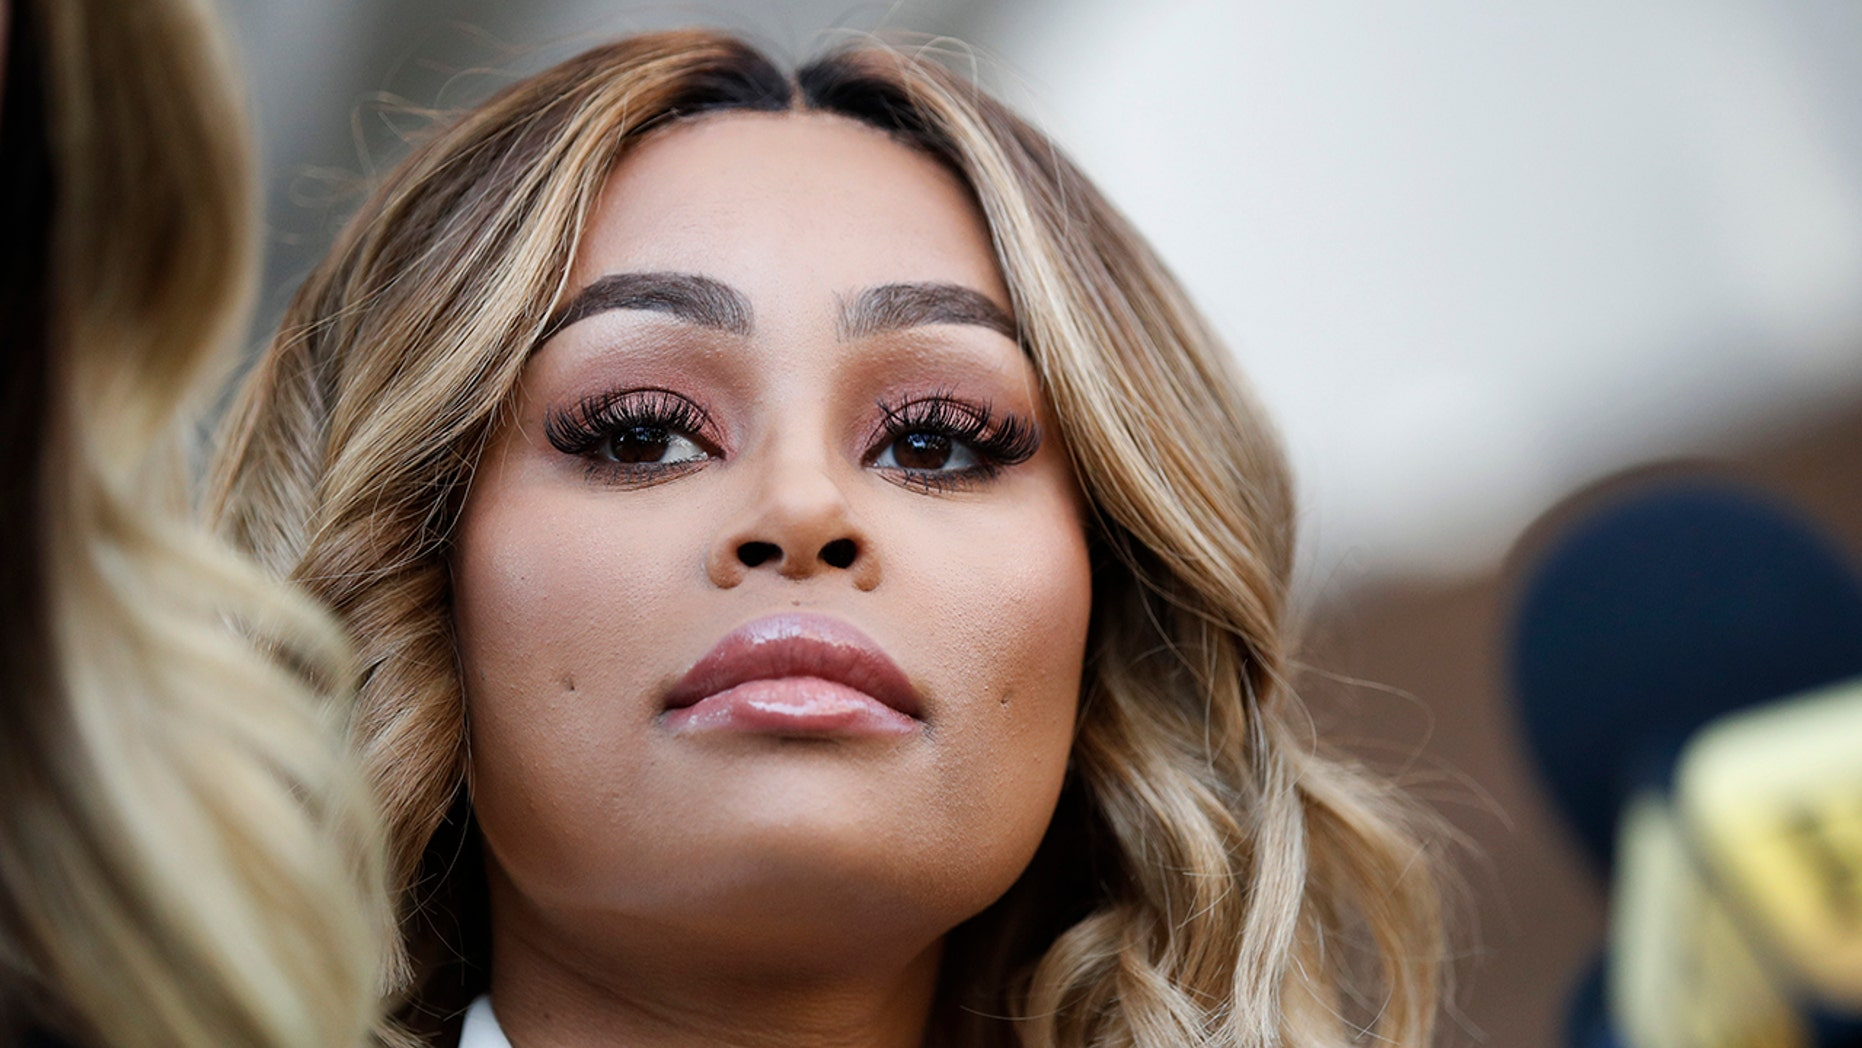 Rob Kardashian's ex-fiancee Blac Chyna listens to her attorney Lisa Bloom at a news conference after a hearing Monday, July 10, 2017, in Los Angeles. A court commissioner has granted Chyna a temporary restraining order against the reality television star. (AP Photo/Jae C. Hong)